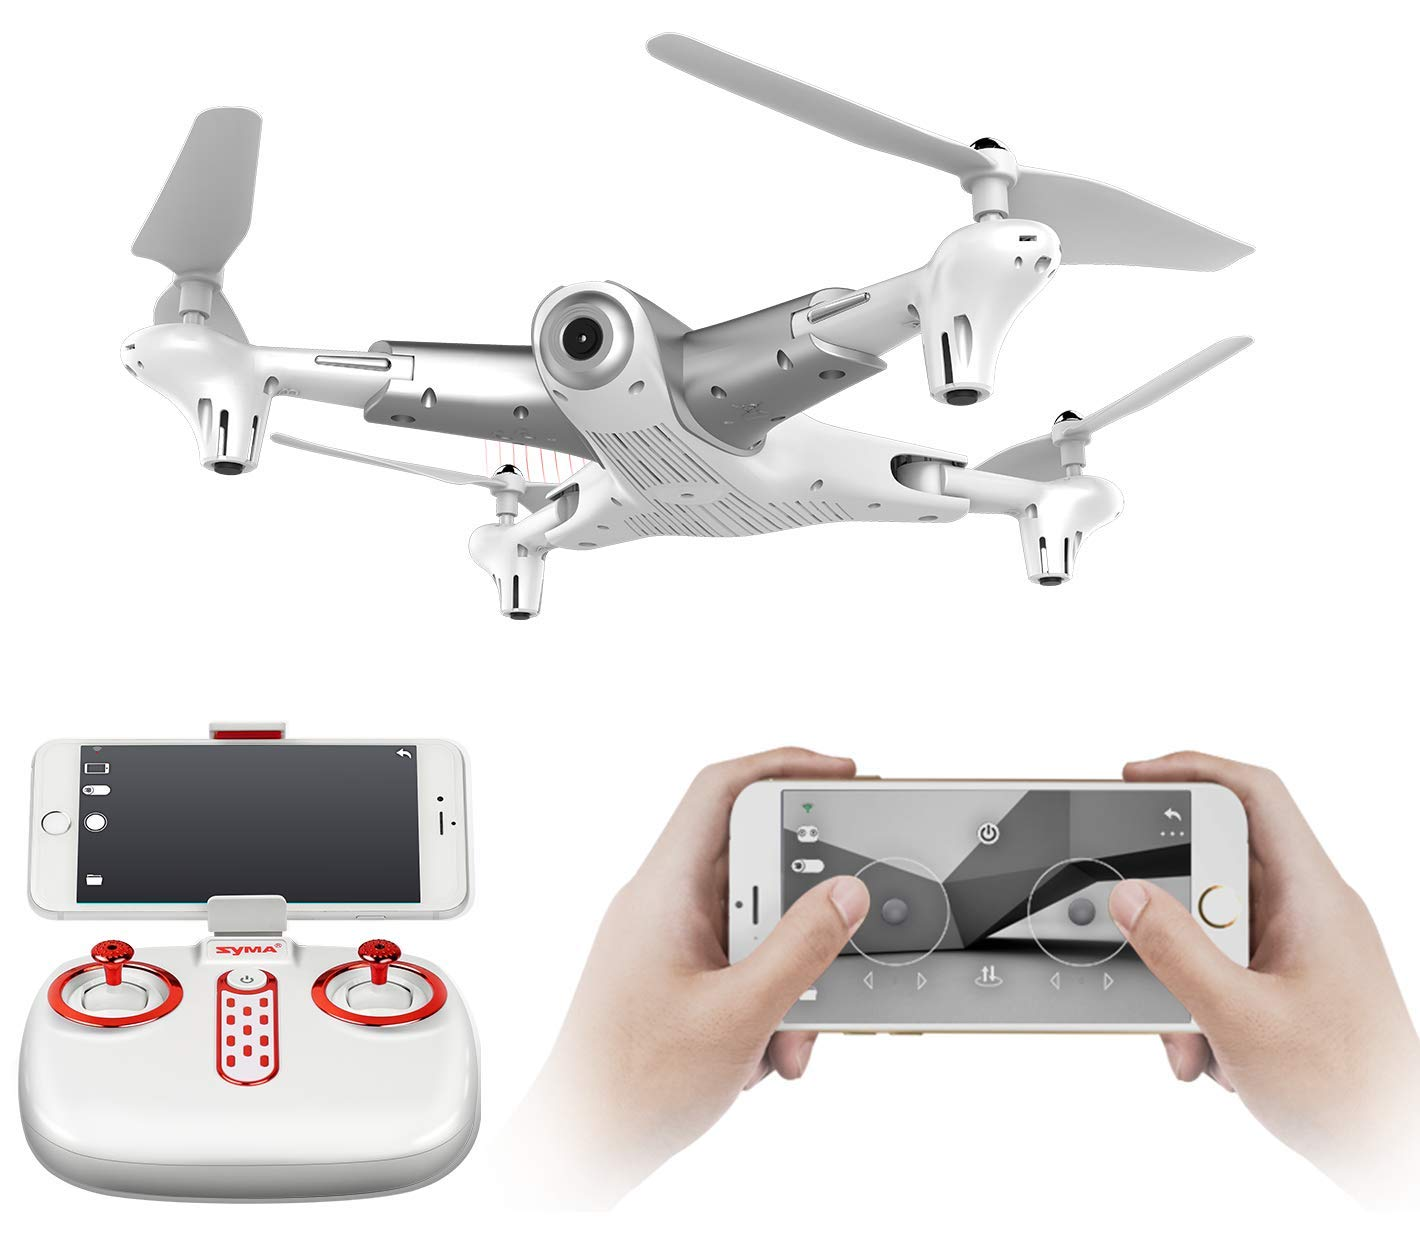 SUPER TOY Wi-Fi Camera Pocket Foldable Drone 2.4GHz Professional RC Quadcopter